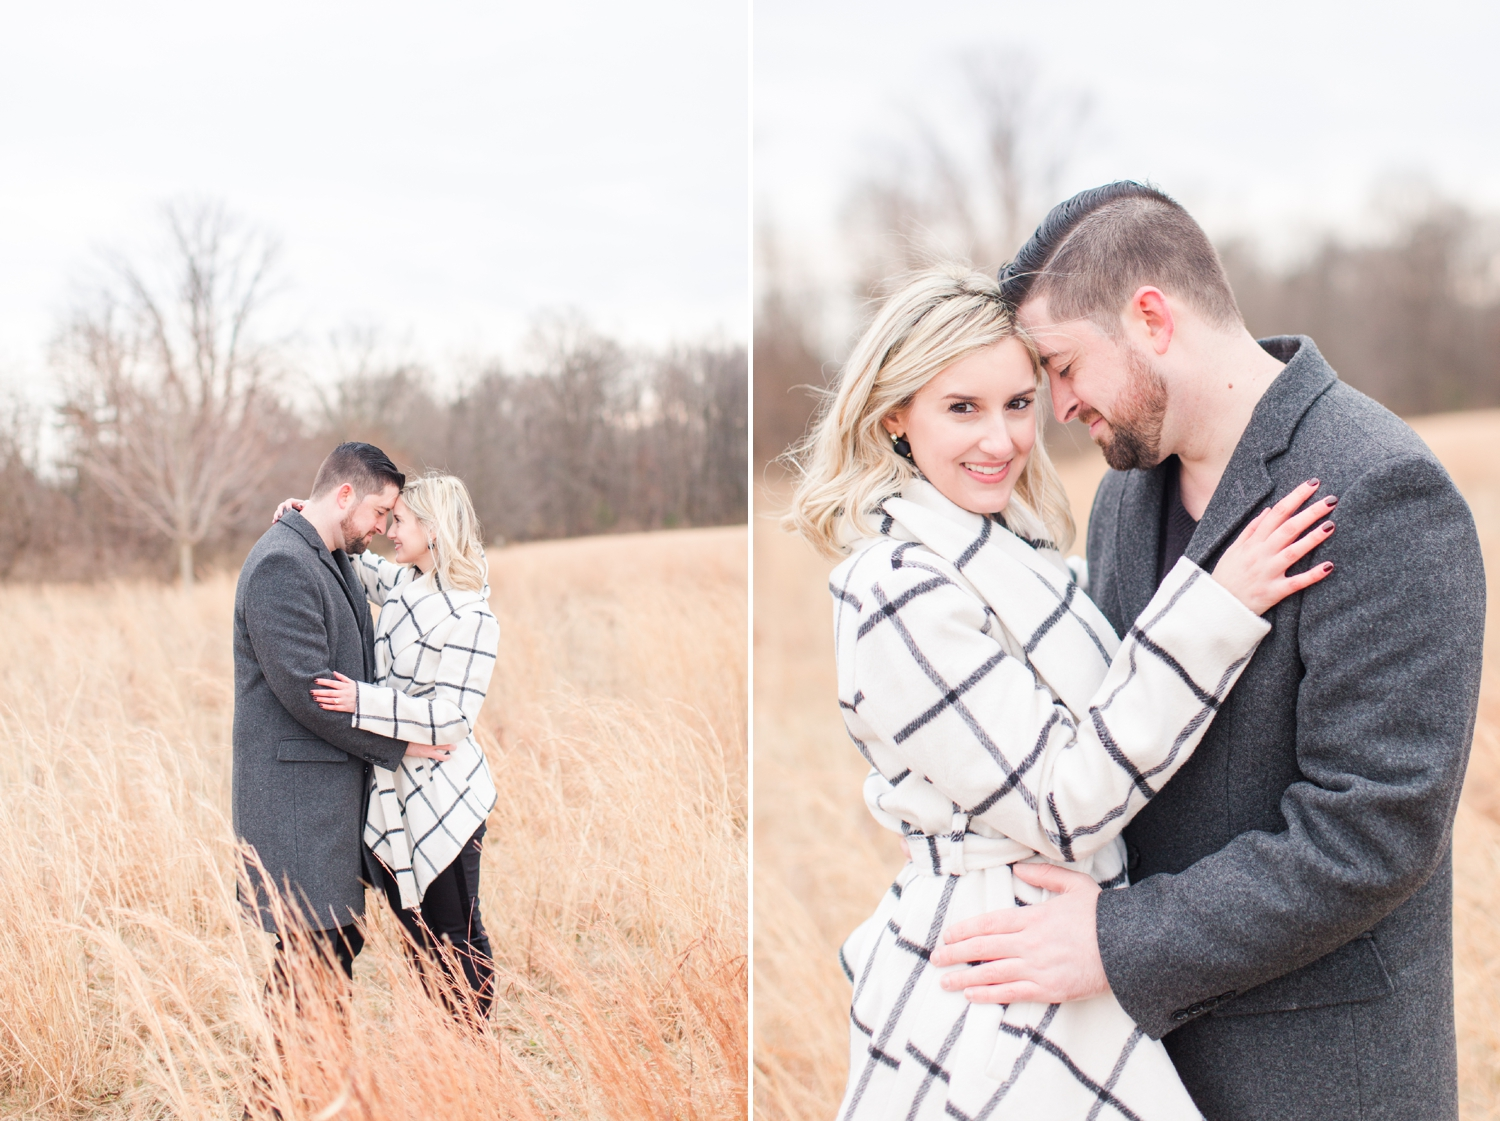 waveny-park-engagement-session-new-canaan-connecticut-photographer-shaina-lee-photography-photo